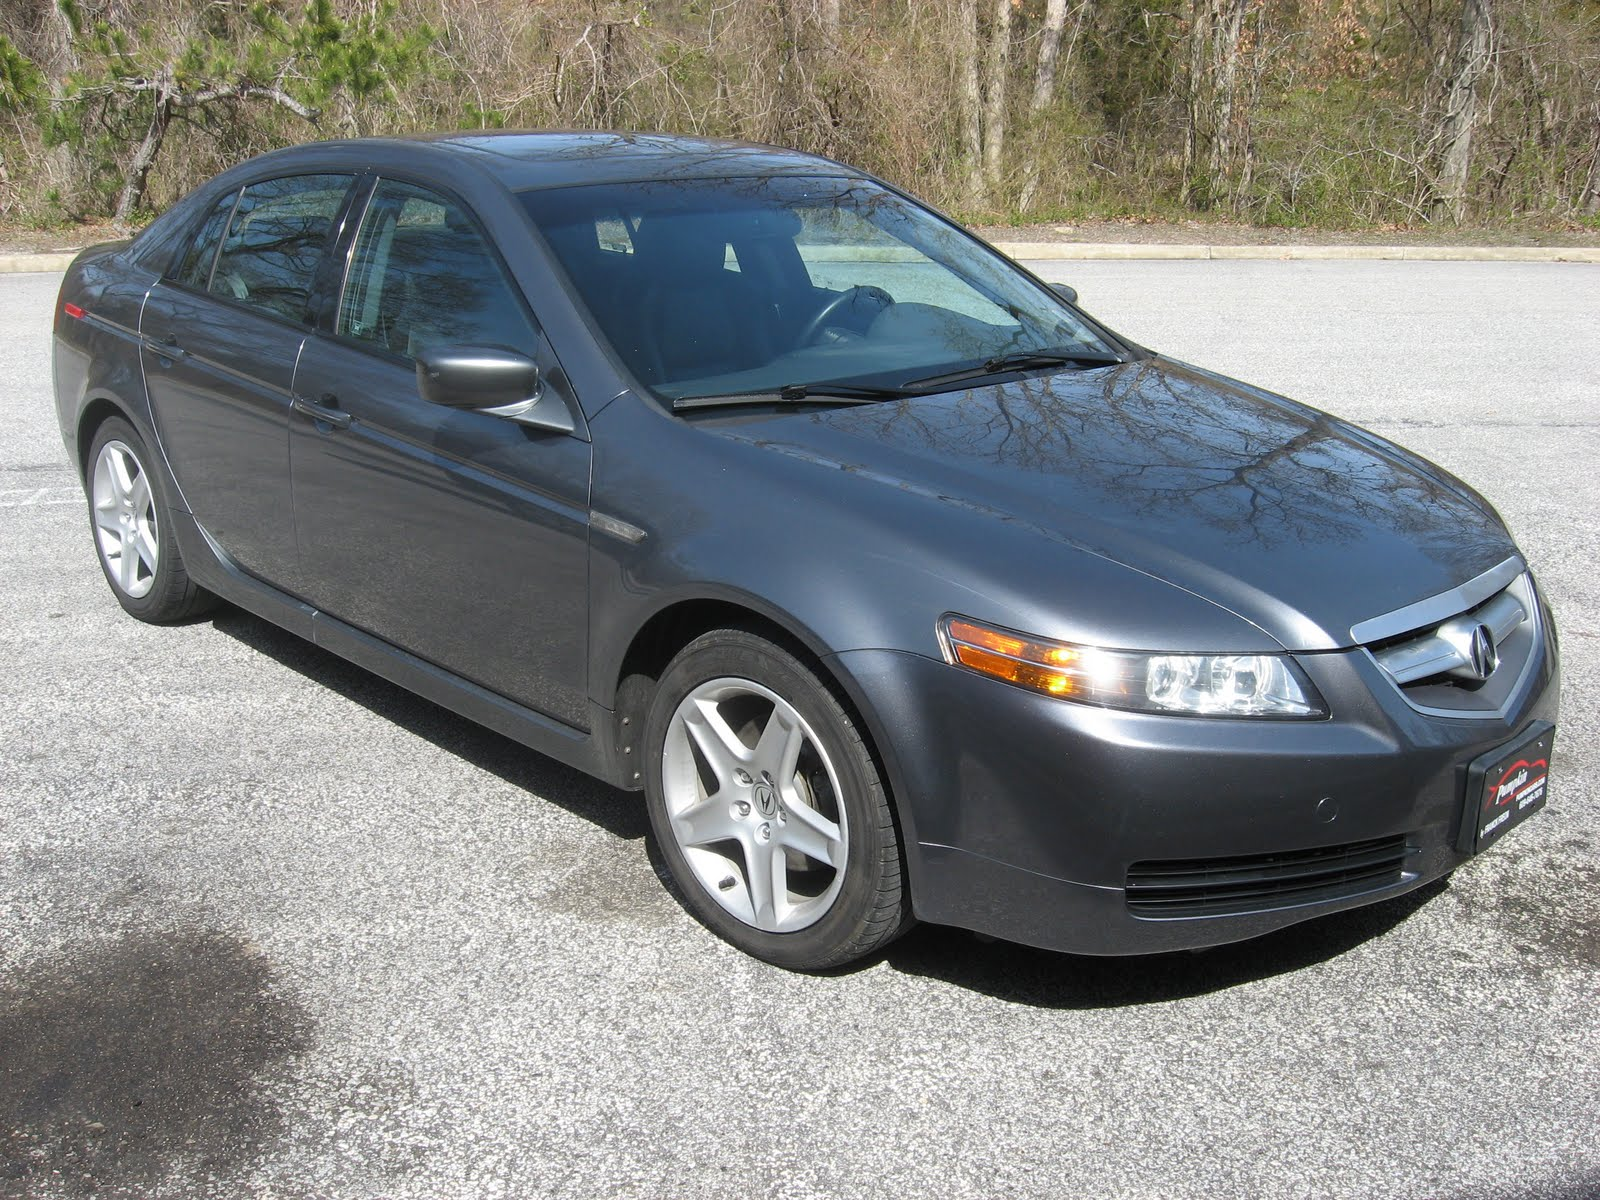 Saw One Of These Today Rd Gen Acura TL And I Couldnt Help - Are acura tl good cars